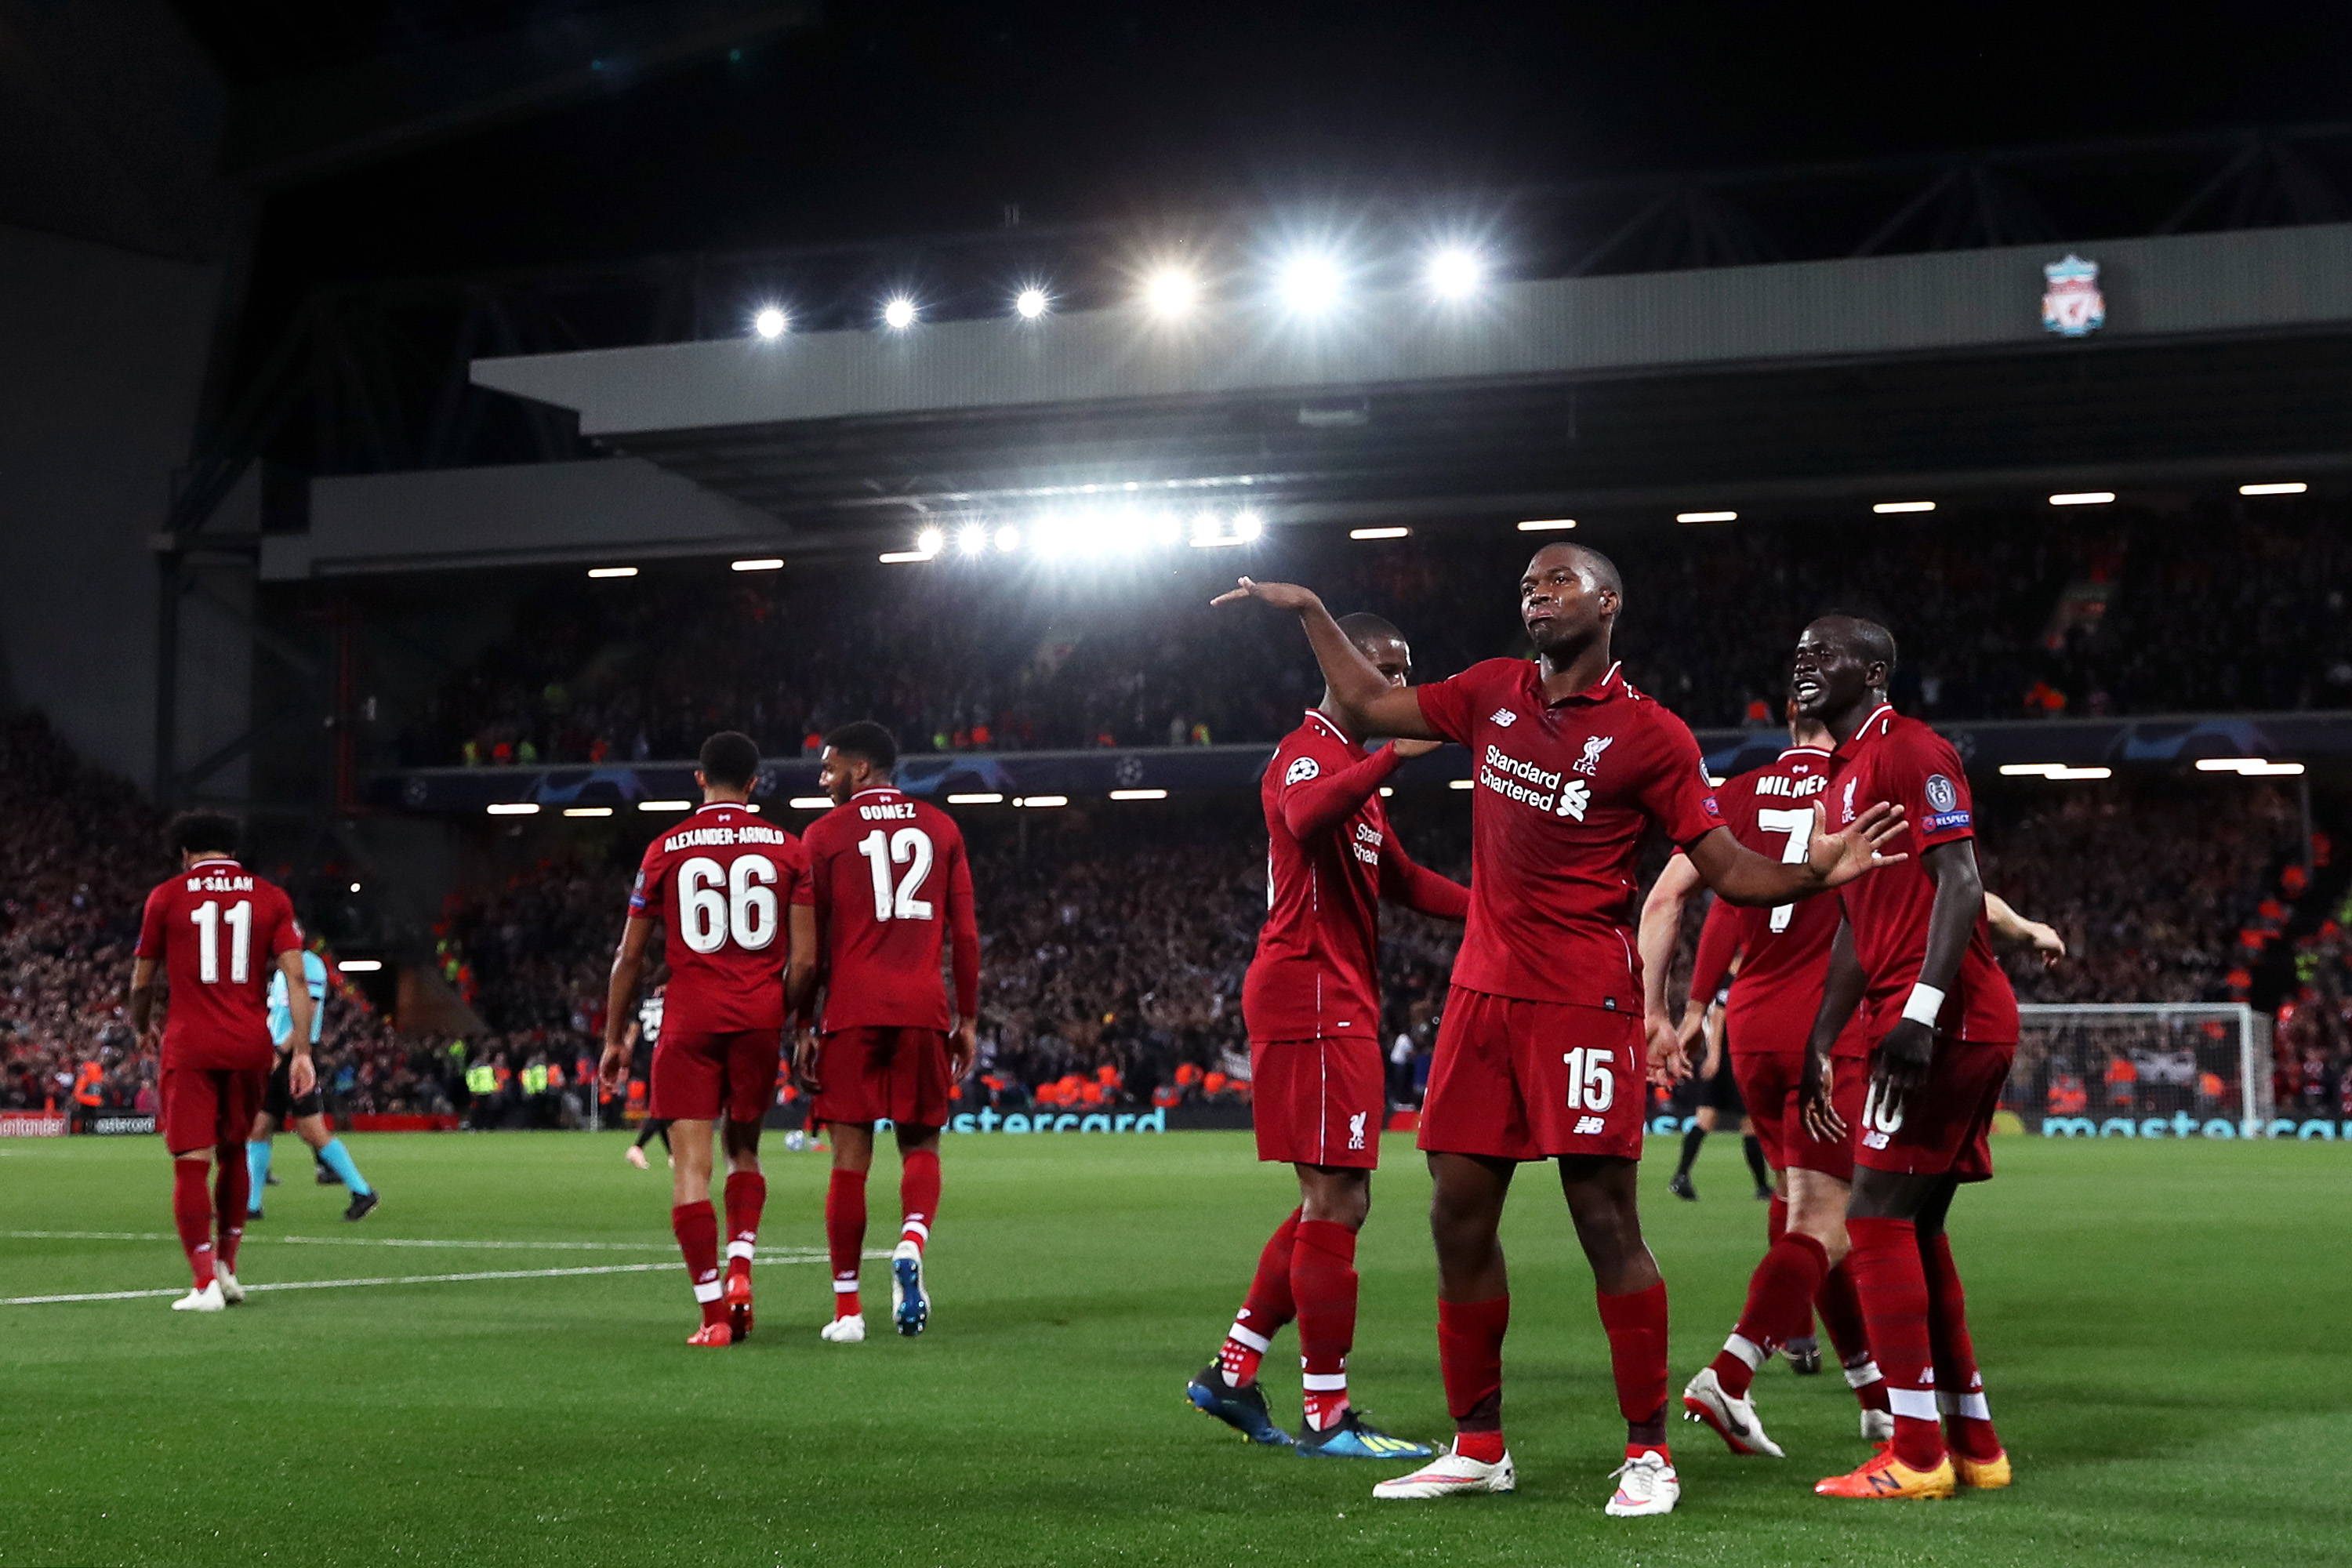 Liverpool 3, Paris Saint-Germain 2: First Thoughts